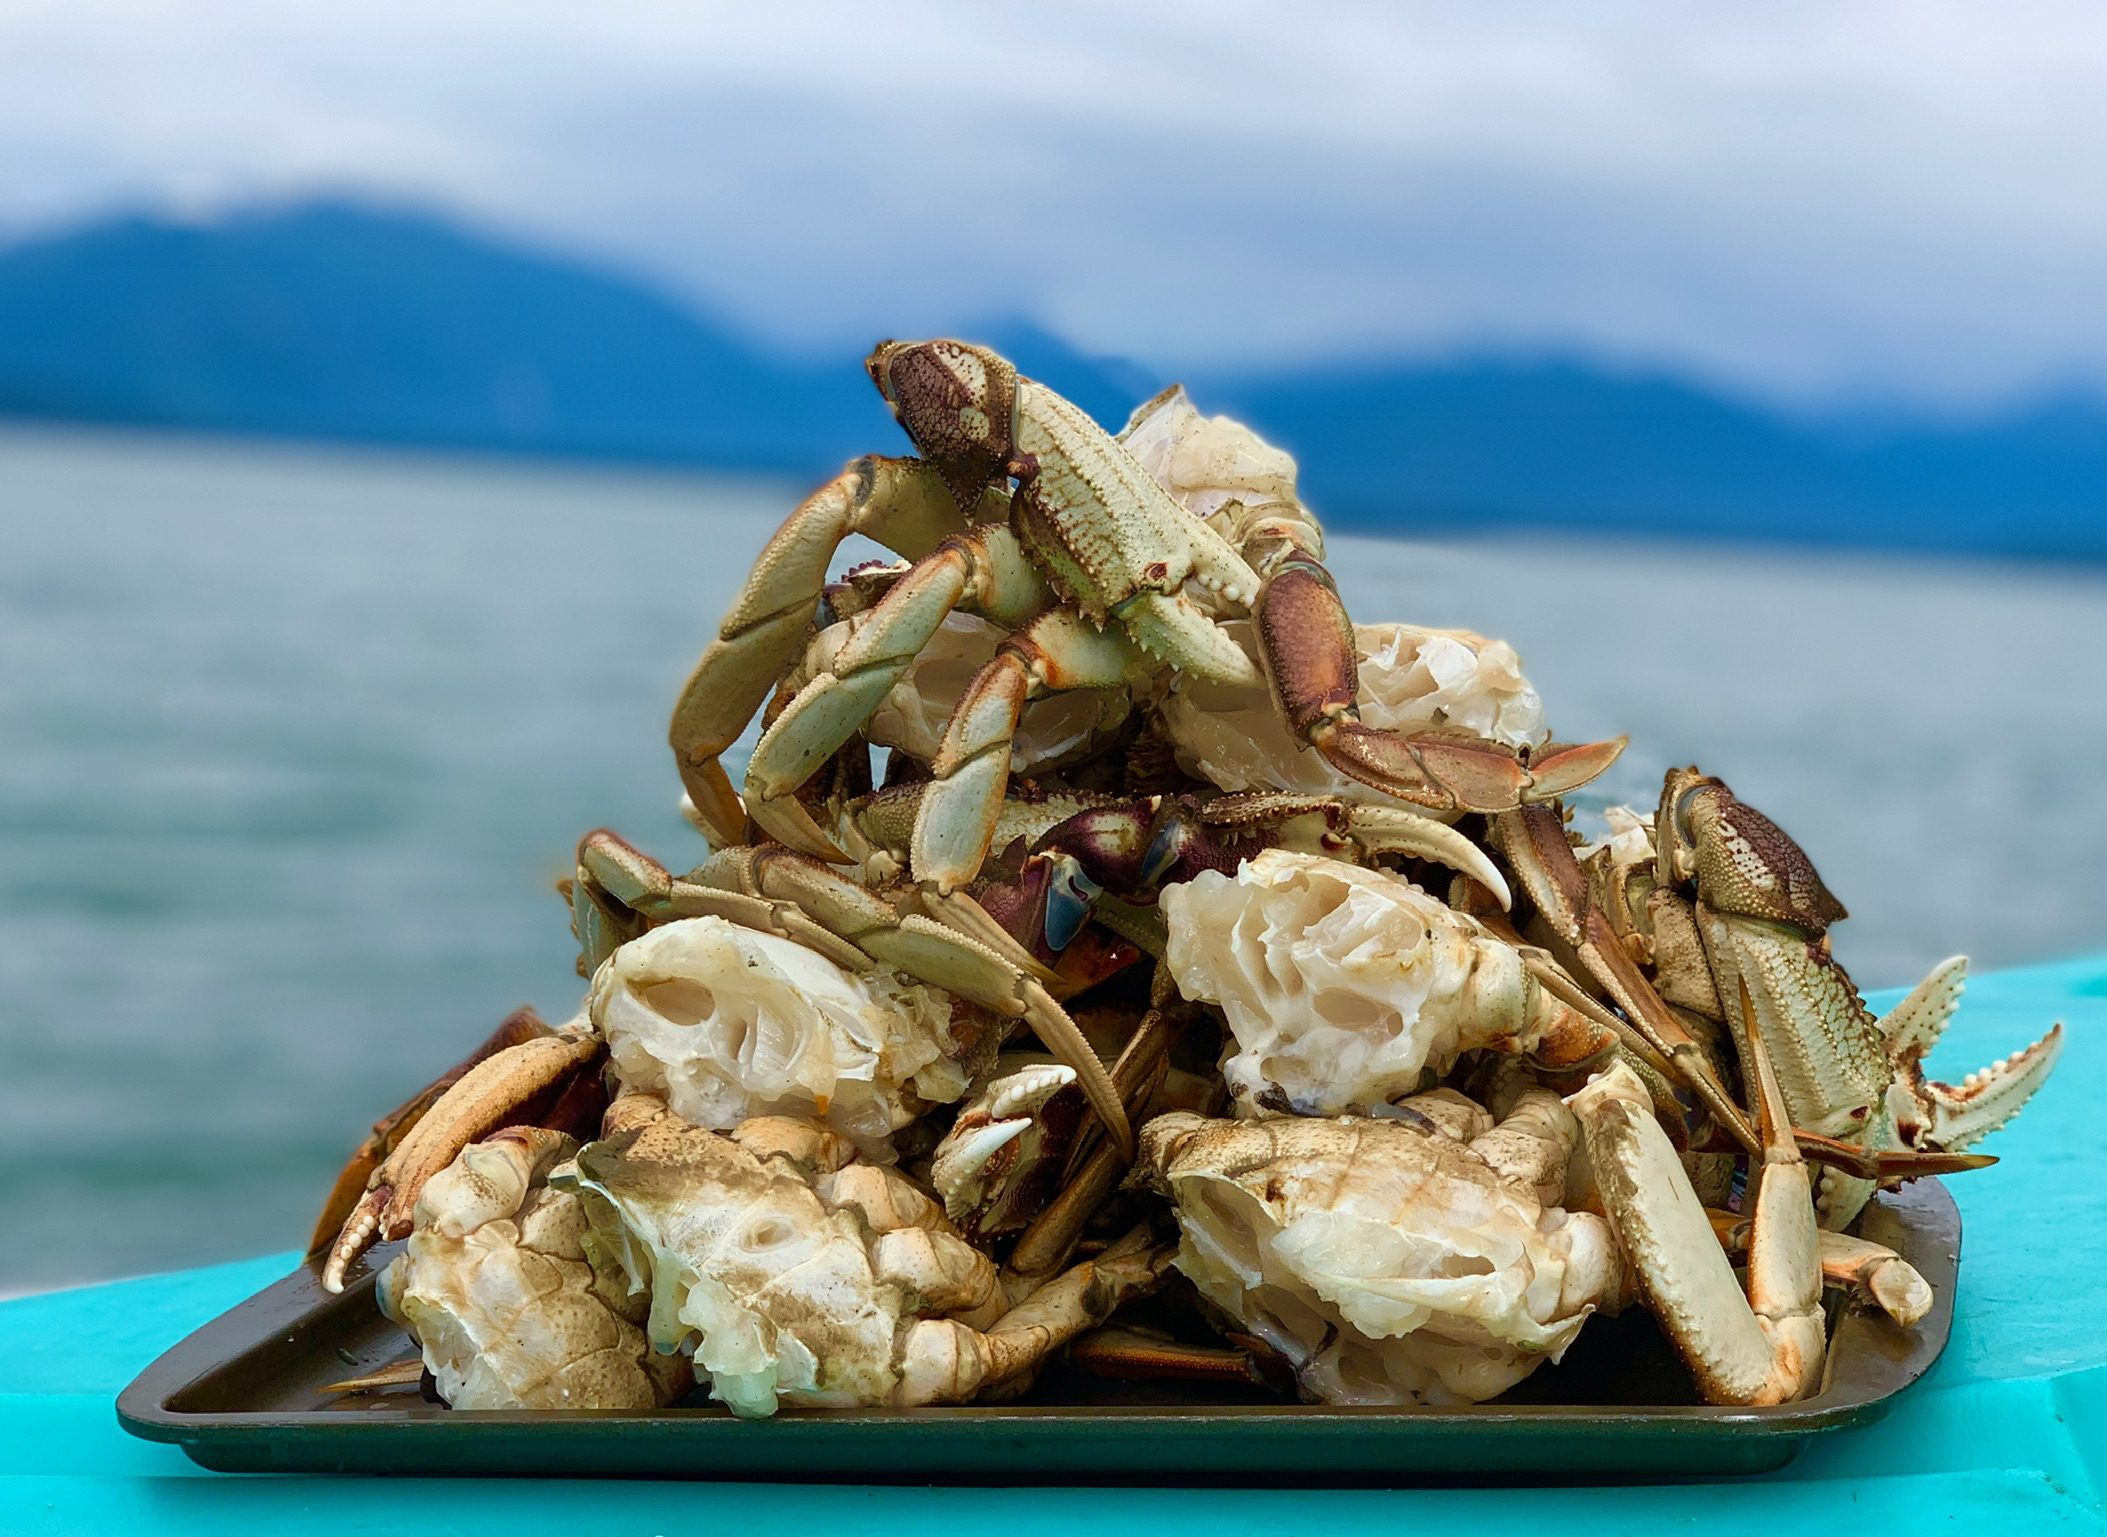 How to Cook Crab in an air fryer